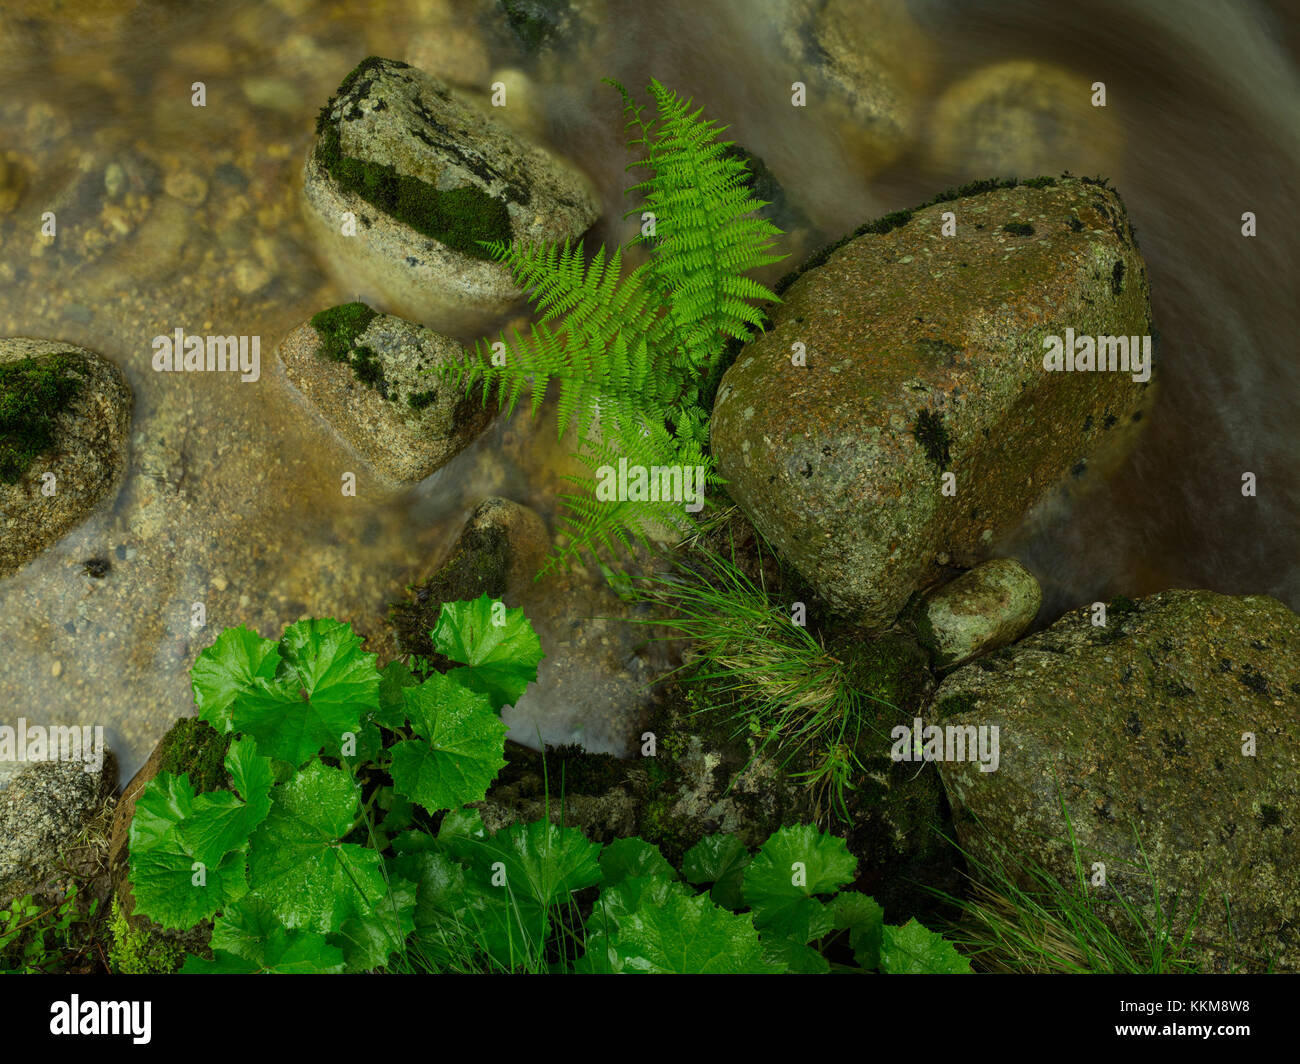 Stream course in the forest, close-up - Stock Image